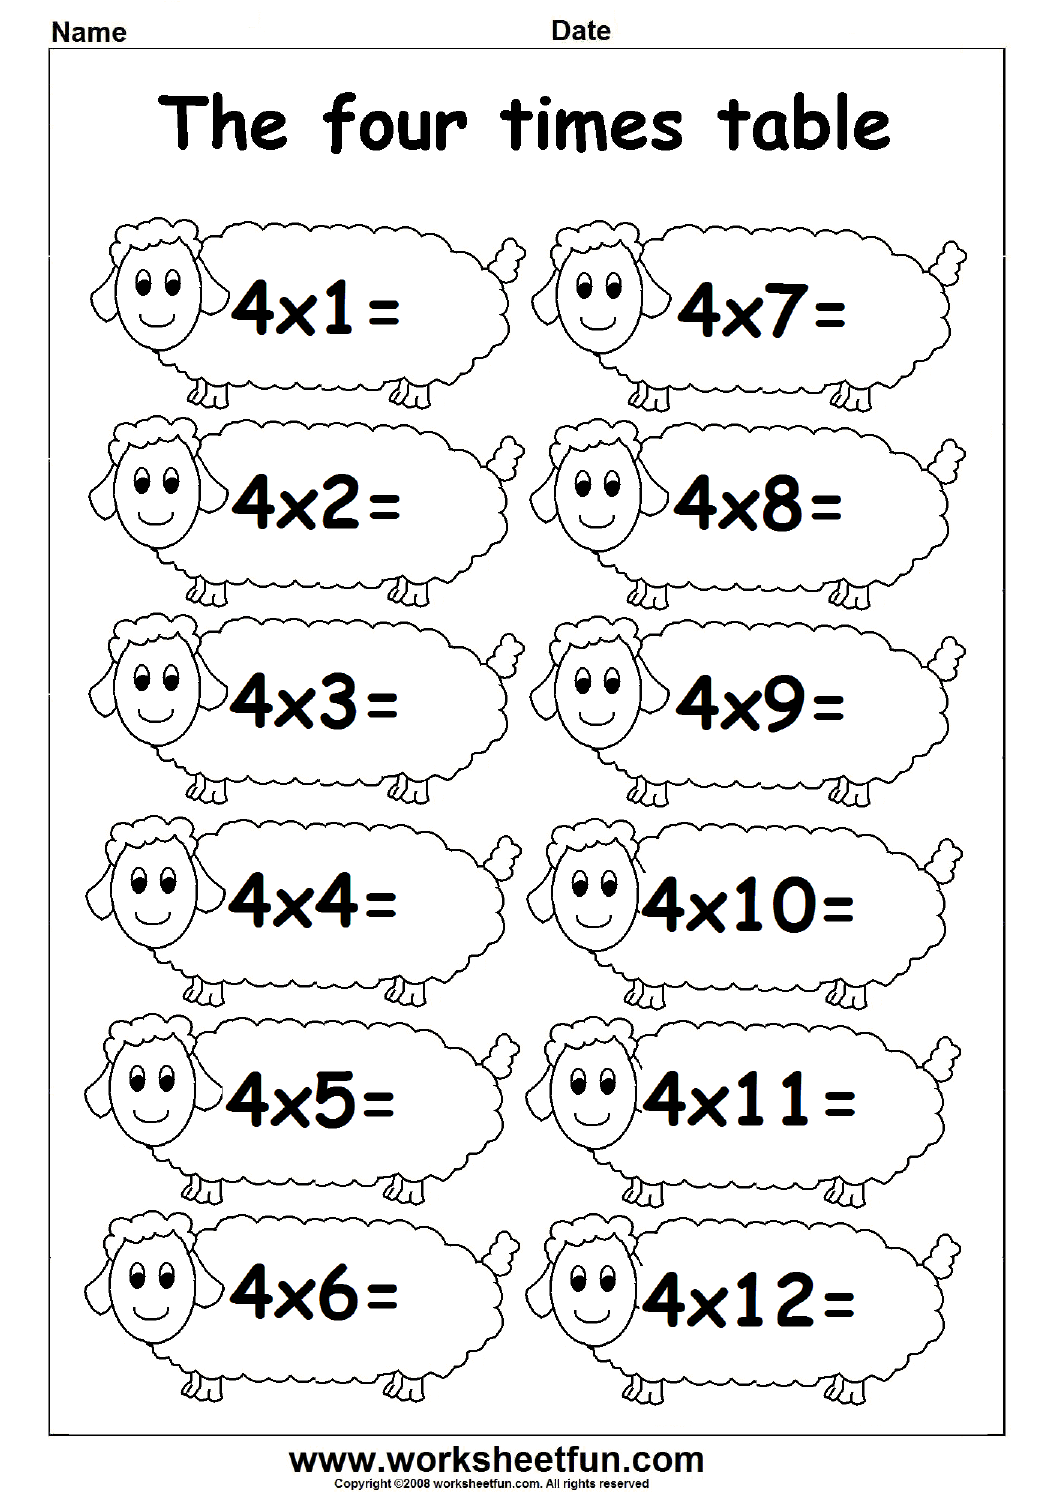 Fun Times Table Worksheets